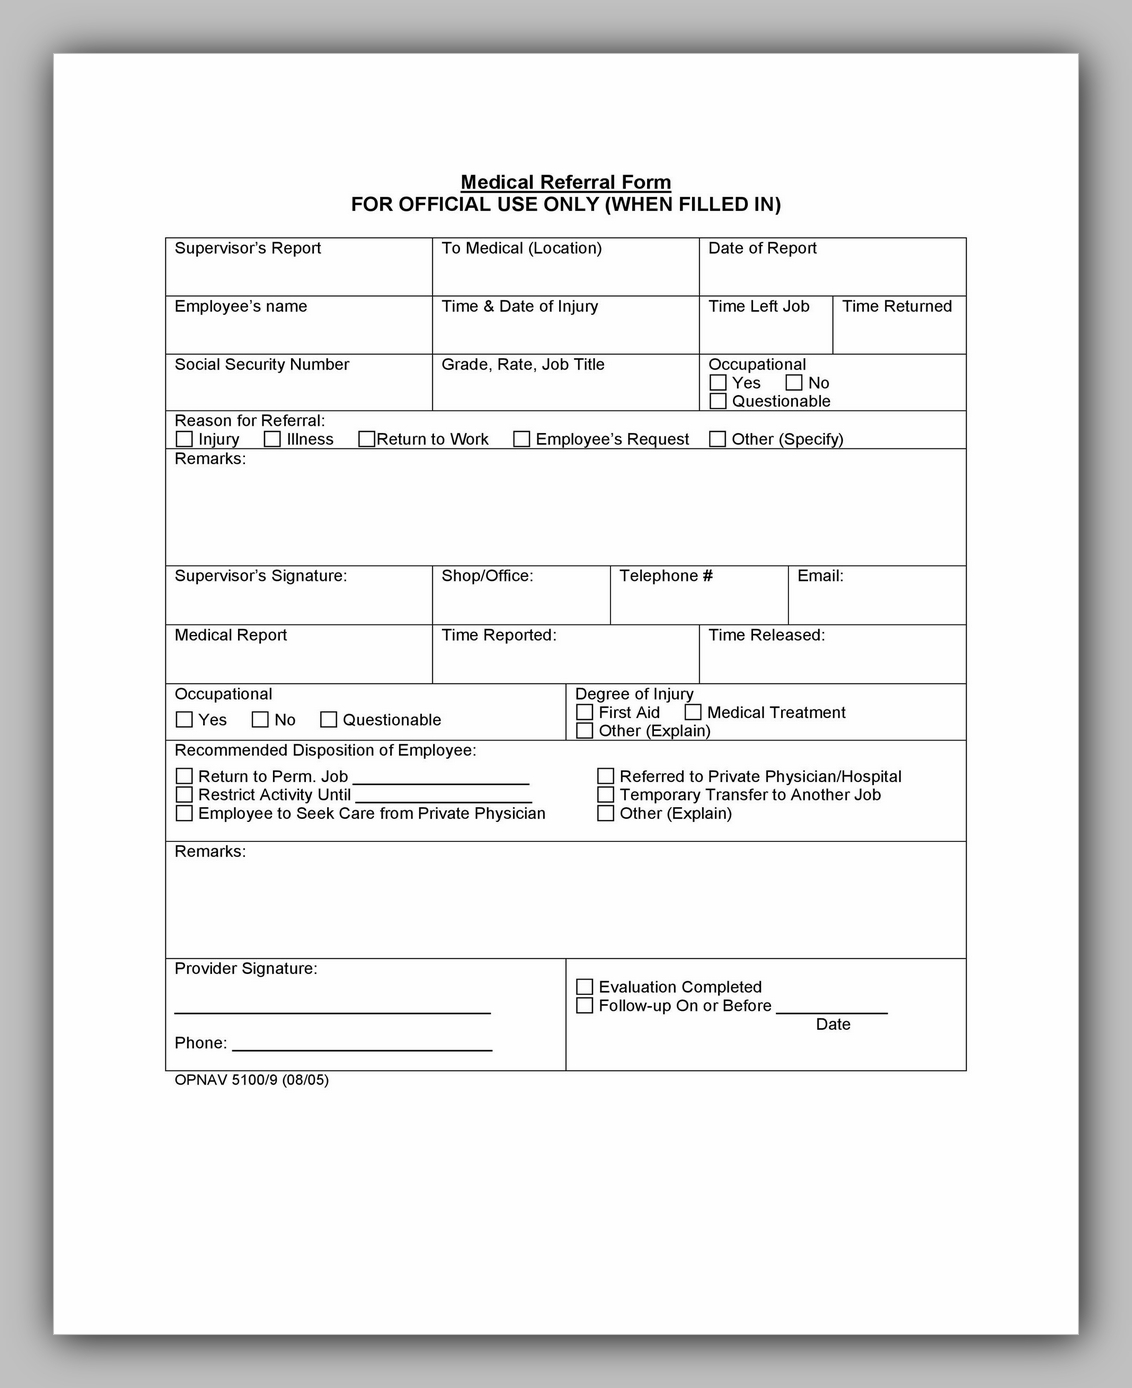 Medical Referral Form Template 40